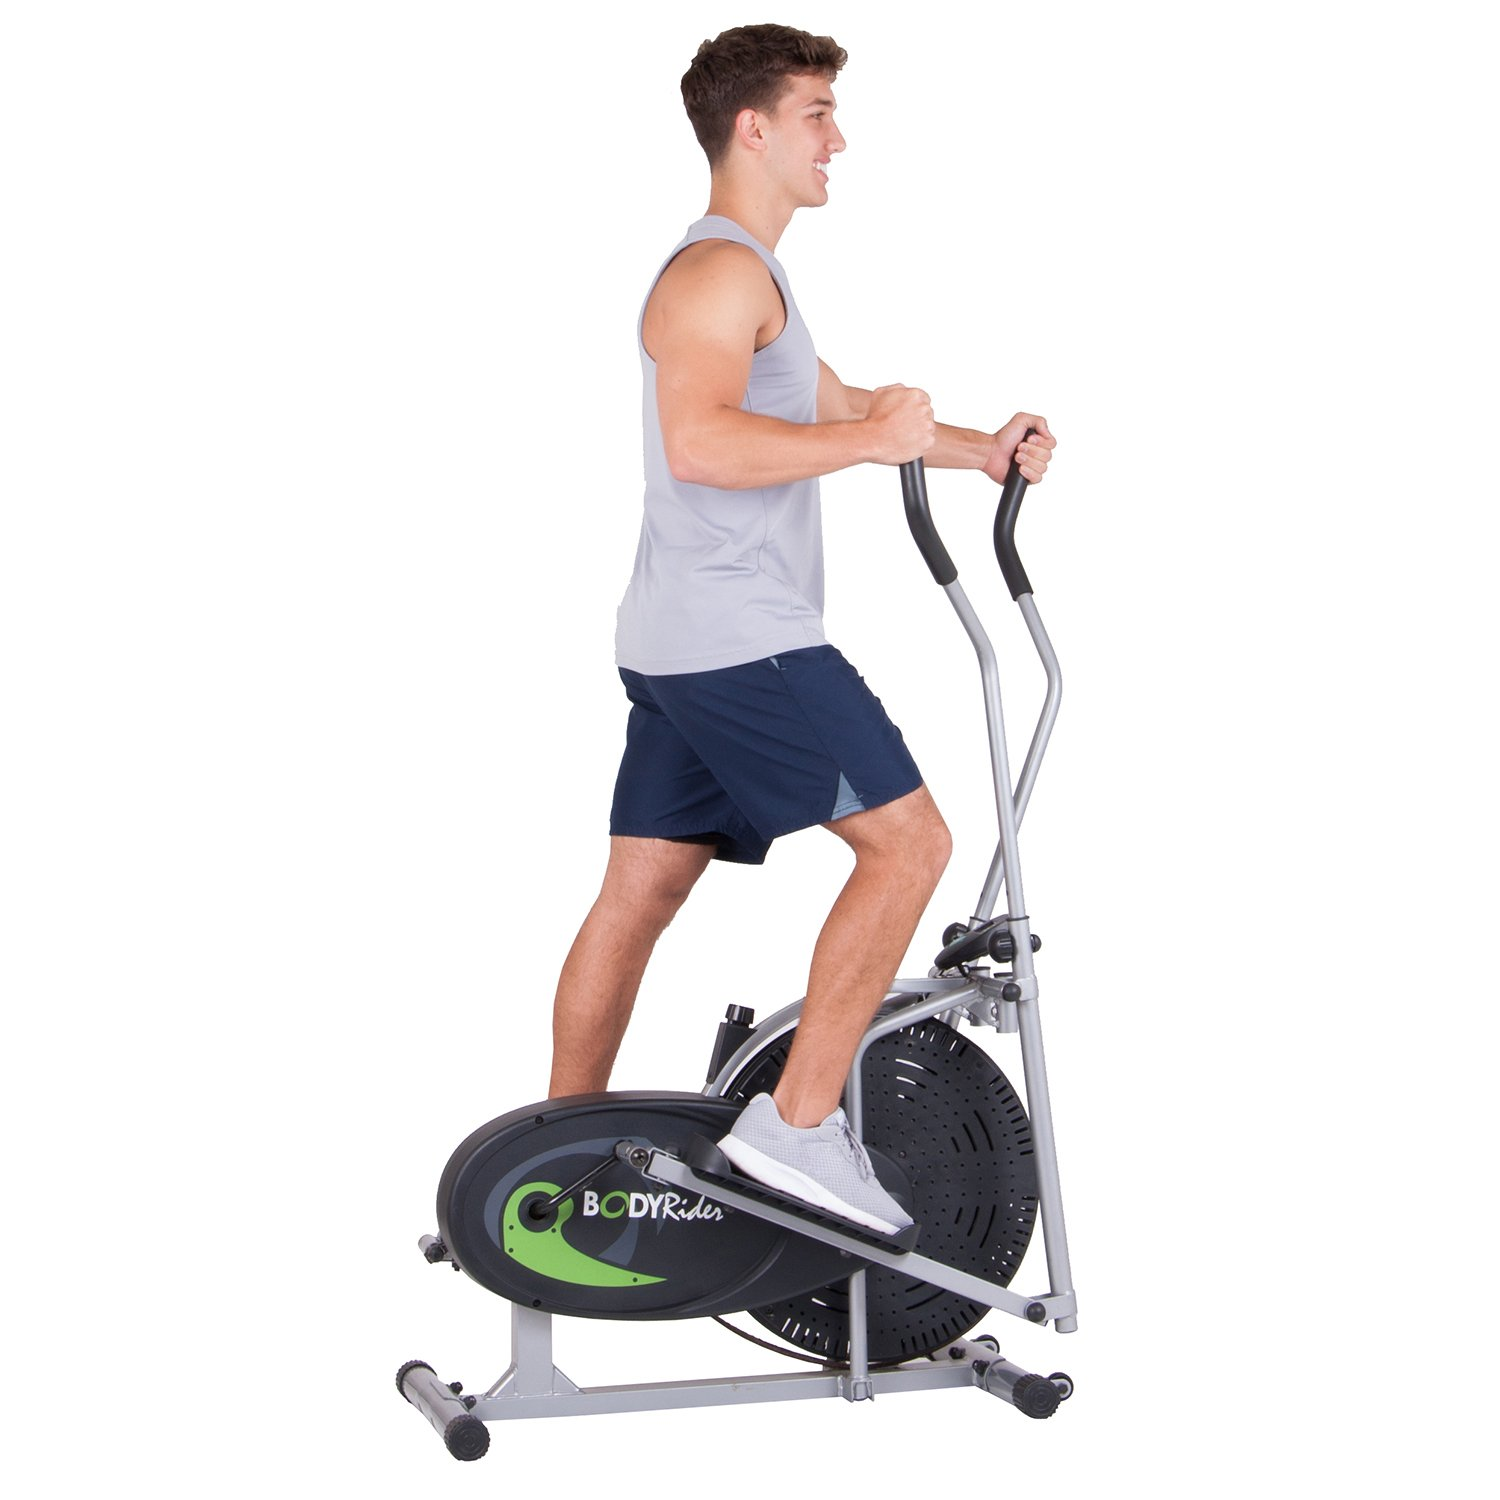 Body Rider Fan Elliptical Trainer with Air Resistance System, Adjustable Levels and Easy Computer BR1830 by Body Max (Image #8)